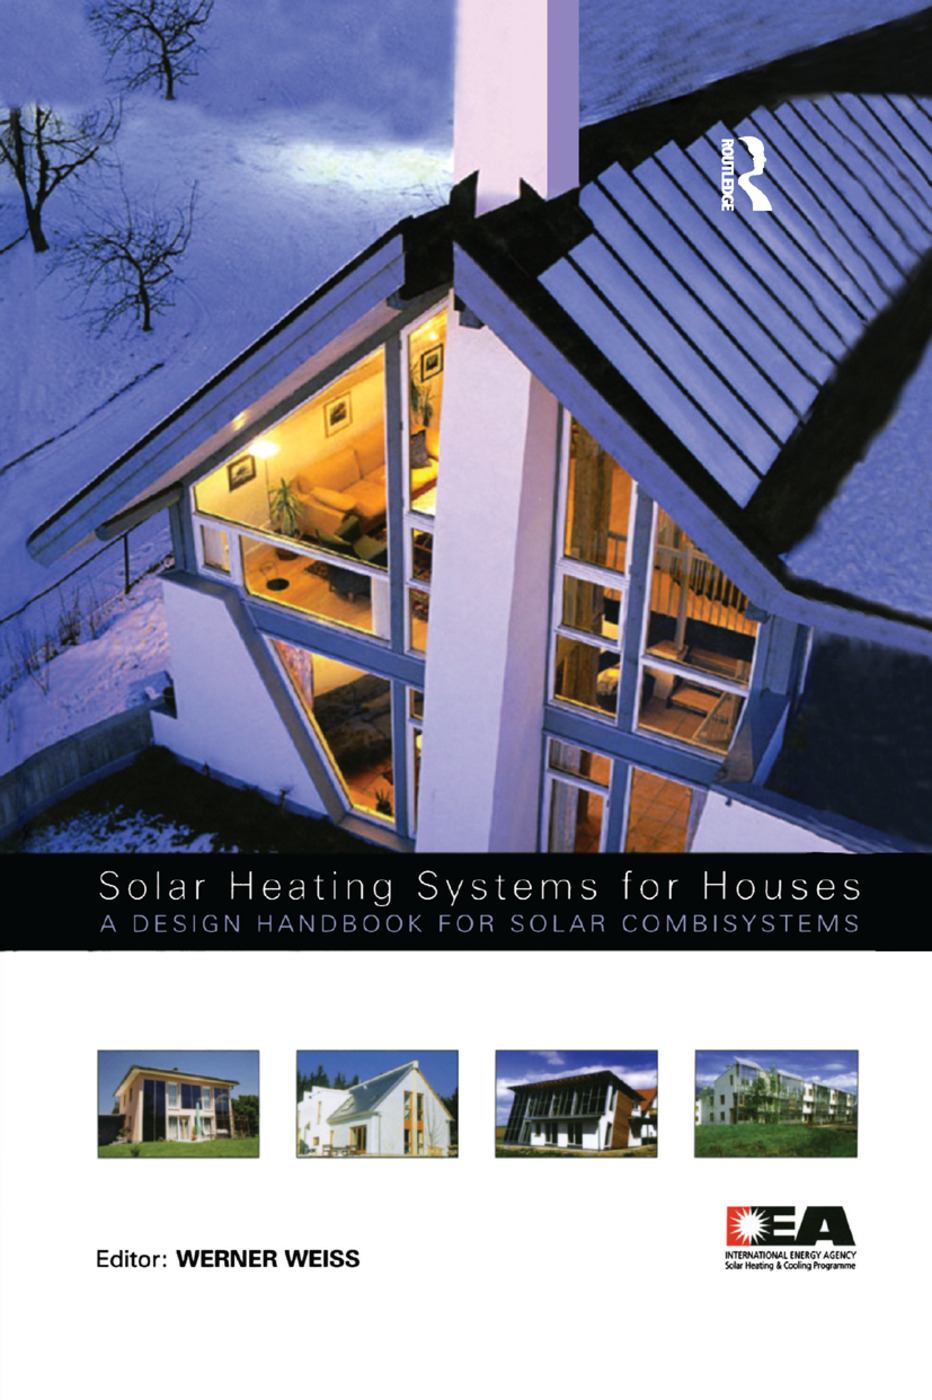 Solar Heating Systems for Houses: A Design Handbook for Solar Combisystems book cover